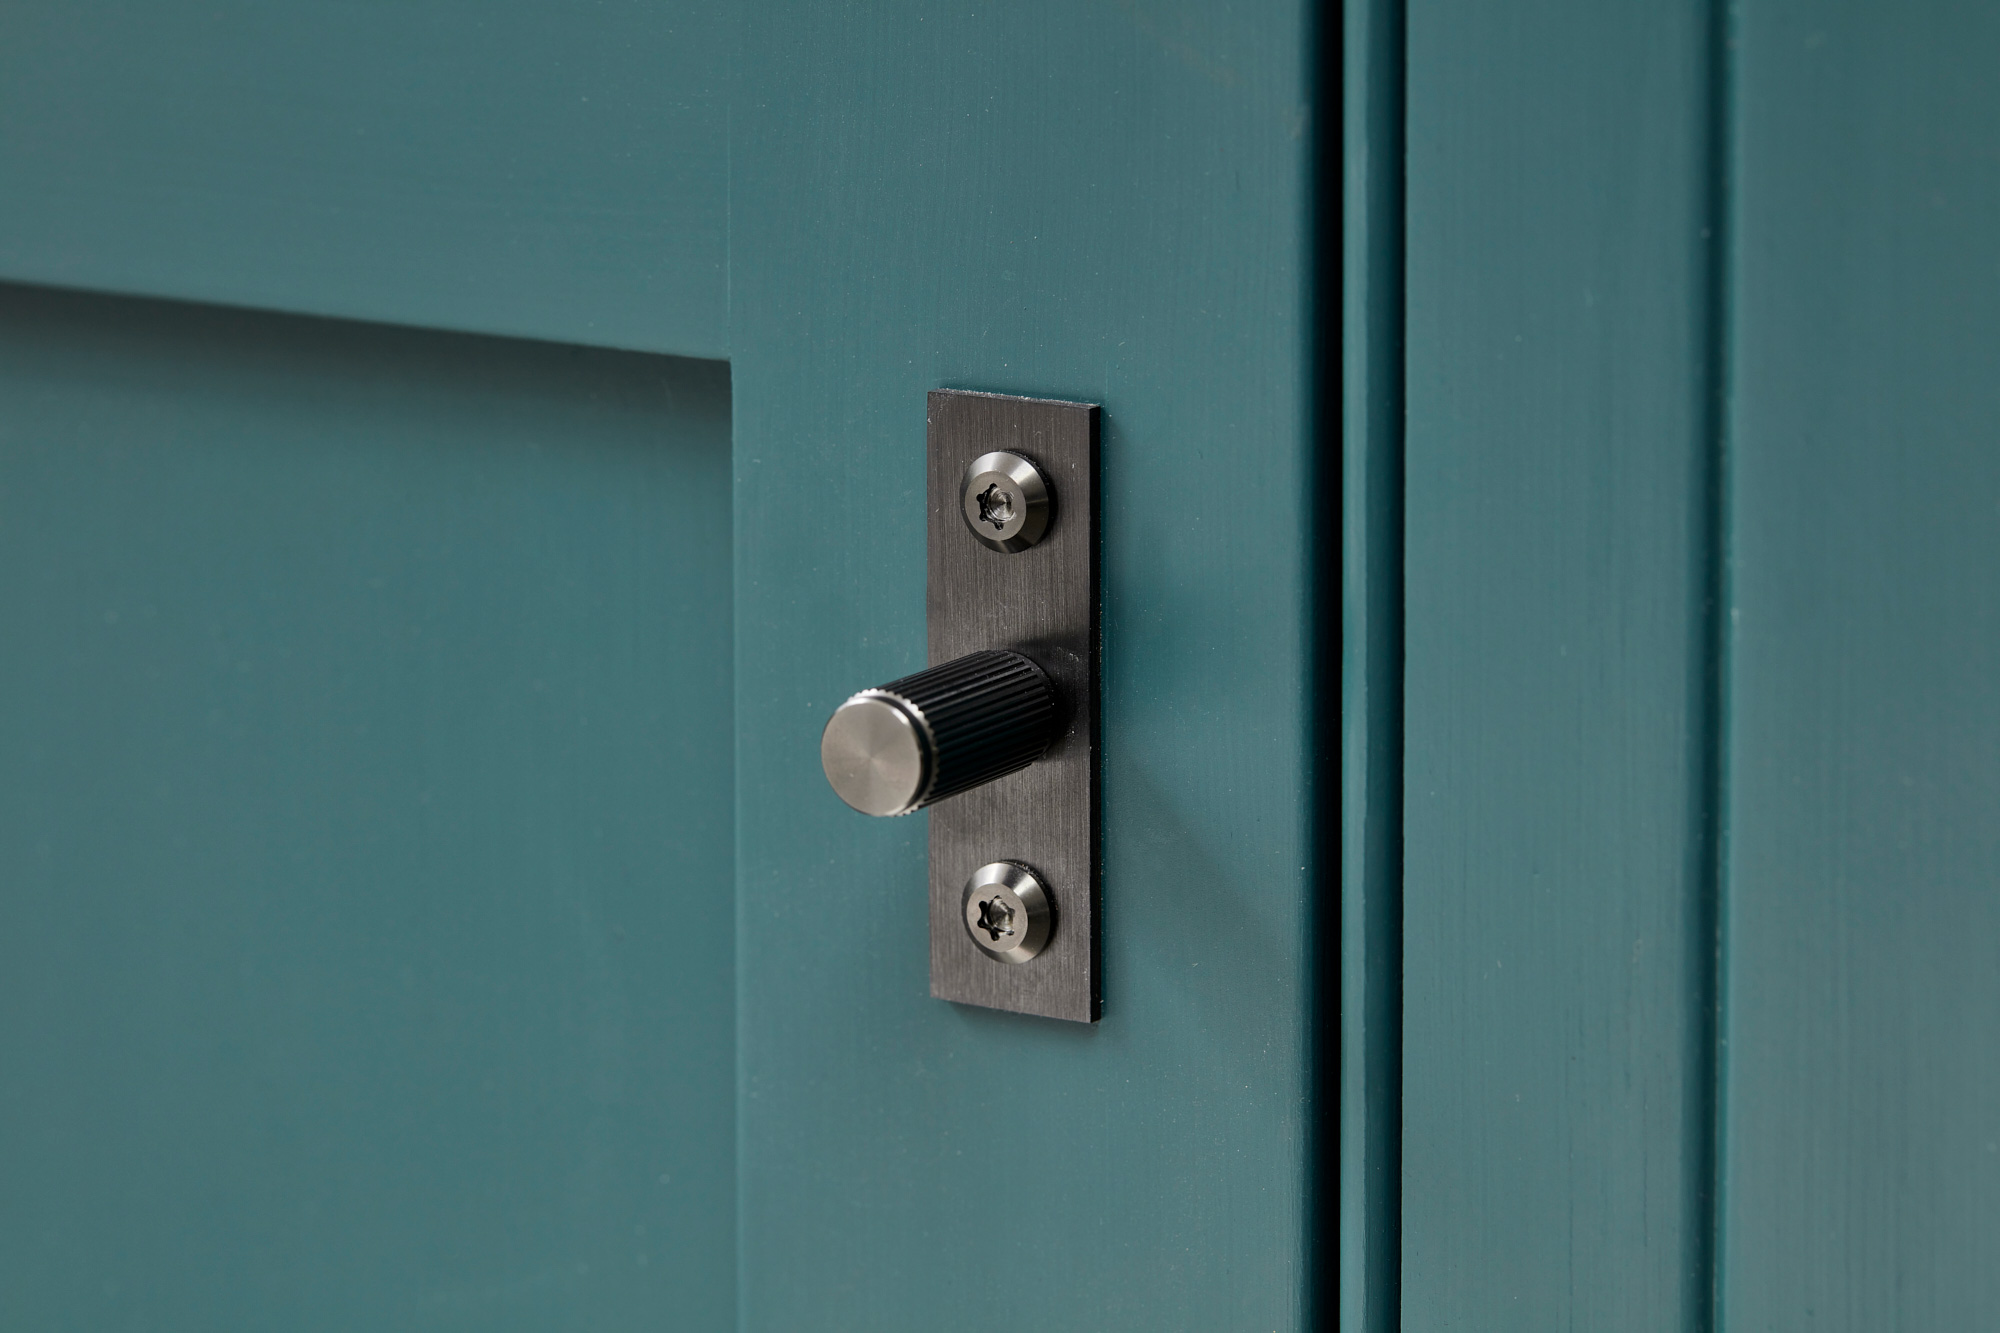 Buster and Punch pull handle on painted Little Greene kitchen